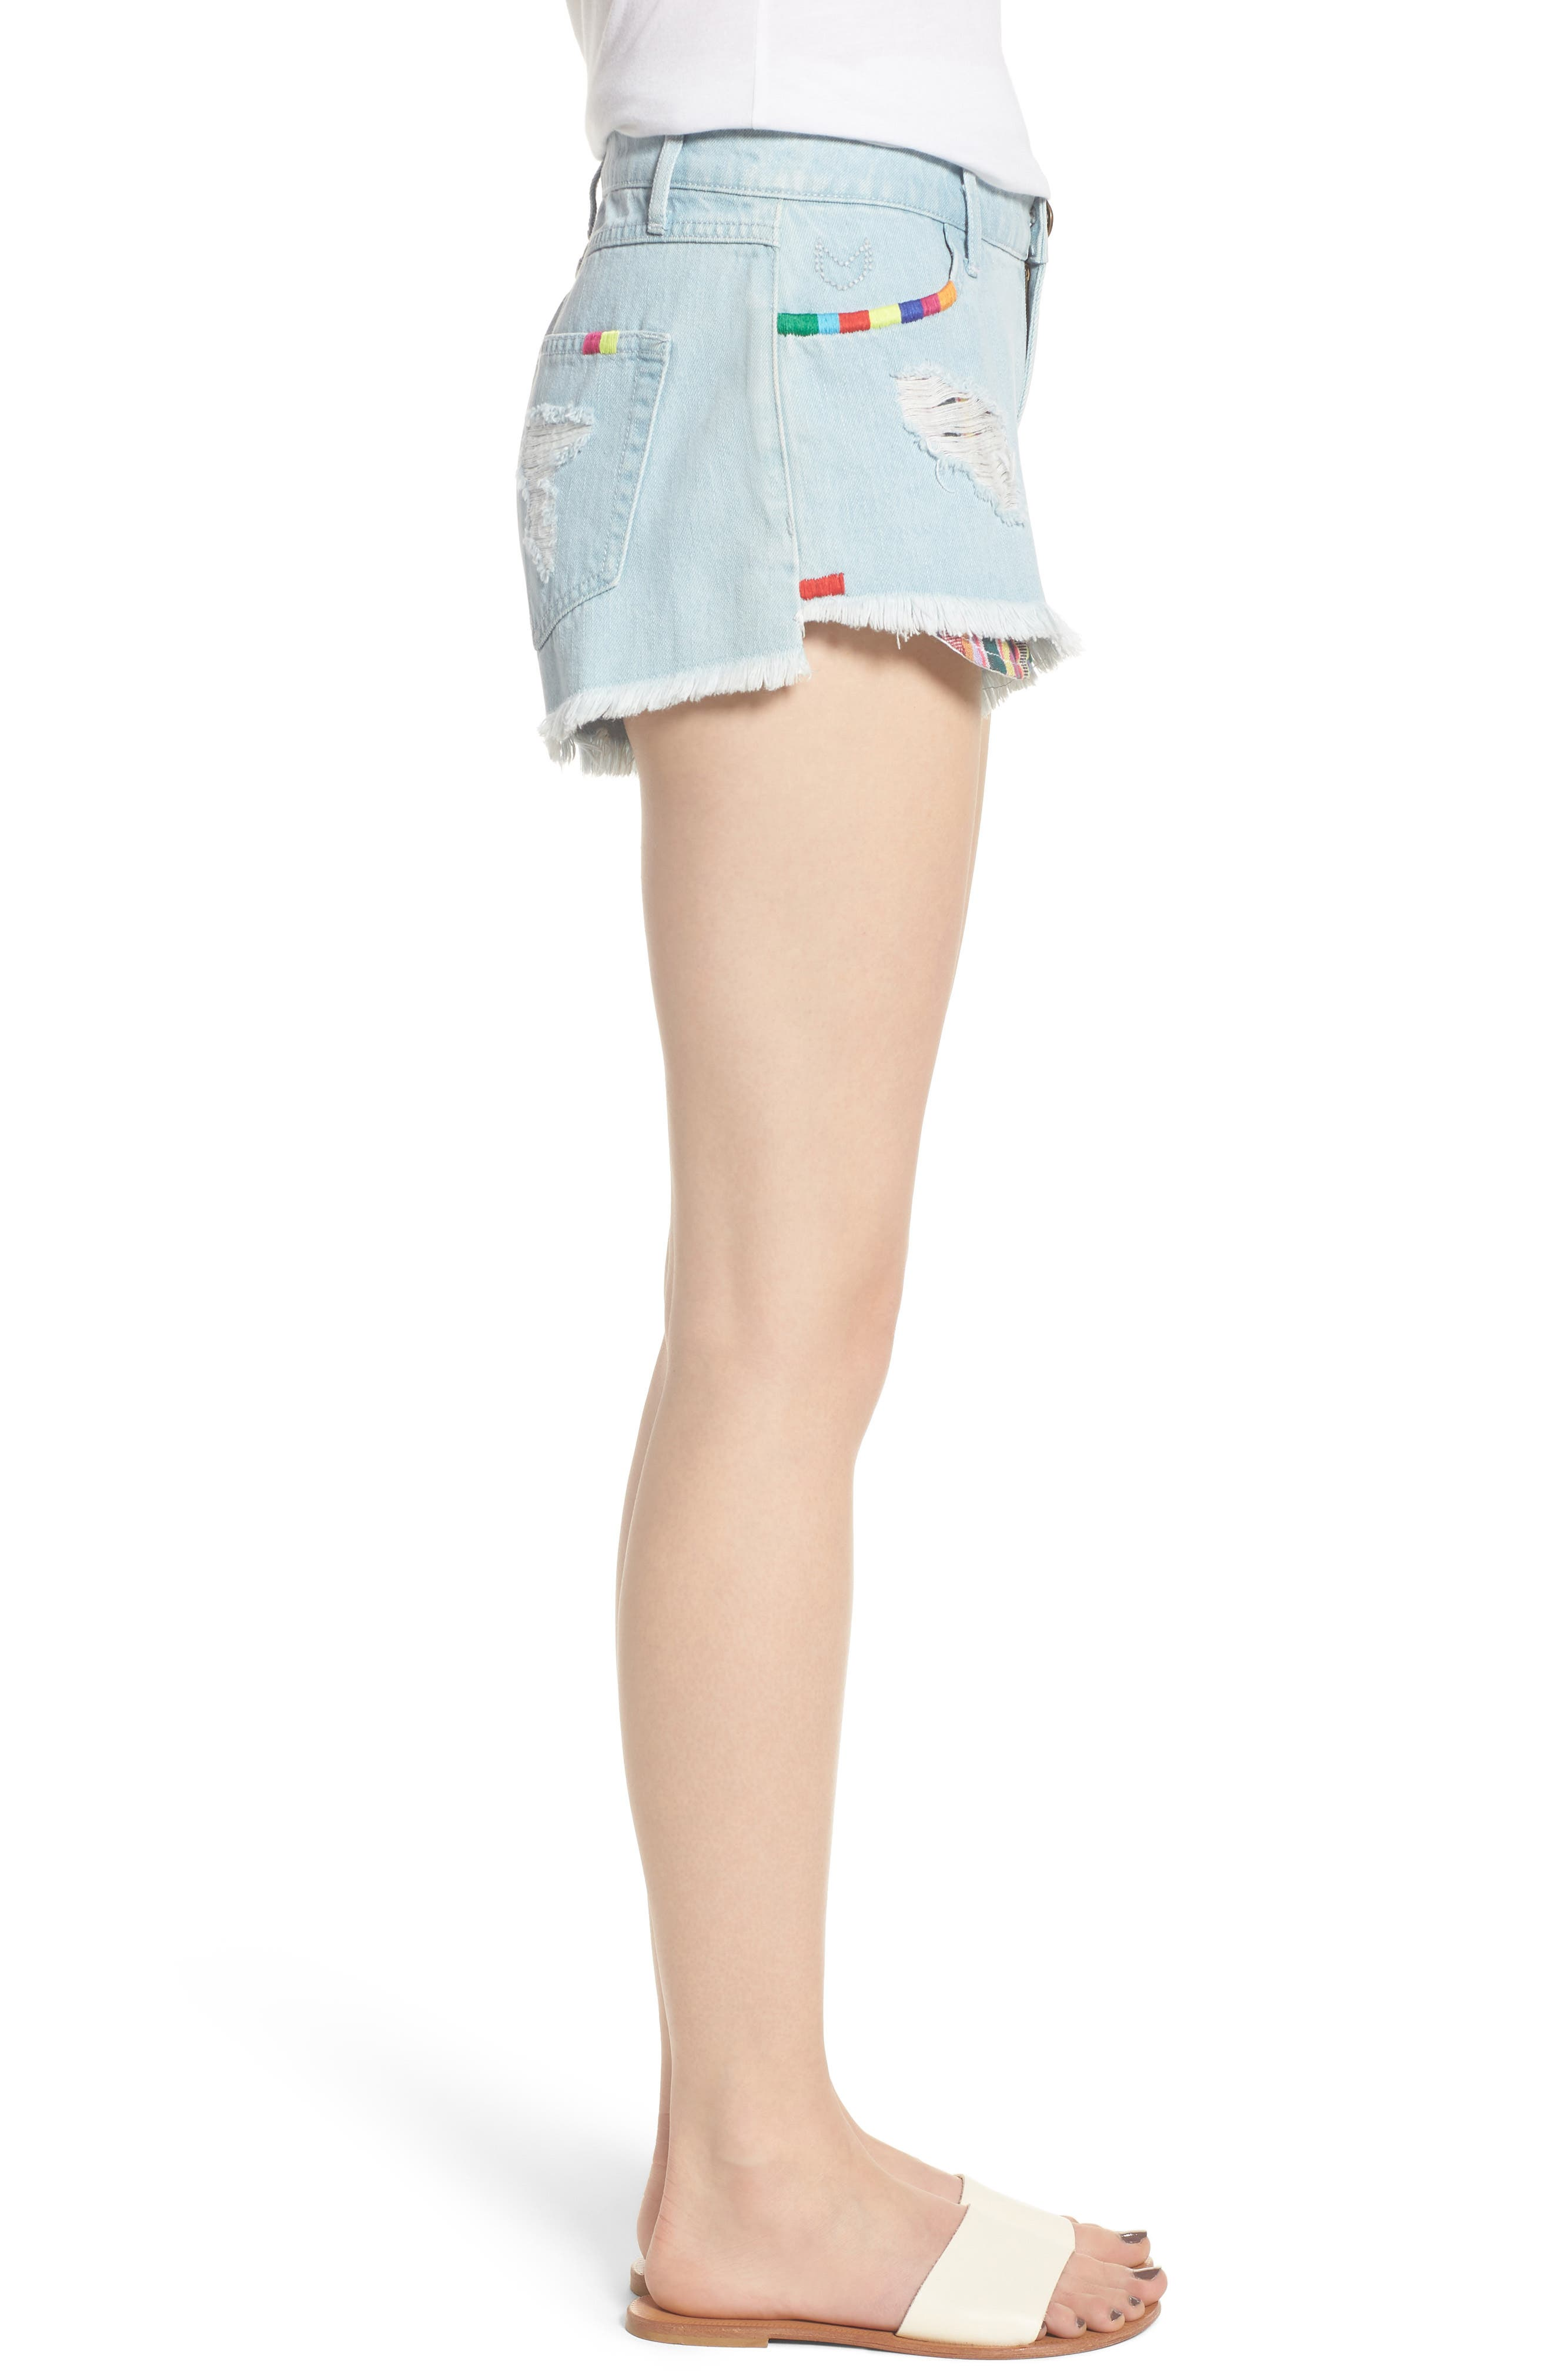 Cabo Cutoff Denim Shorts,                             Alternate thumbnail 3, color,                             400